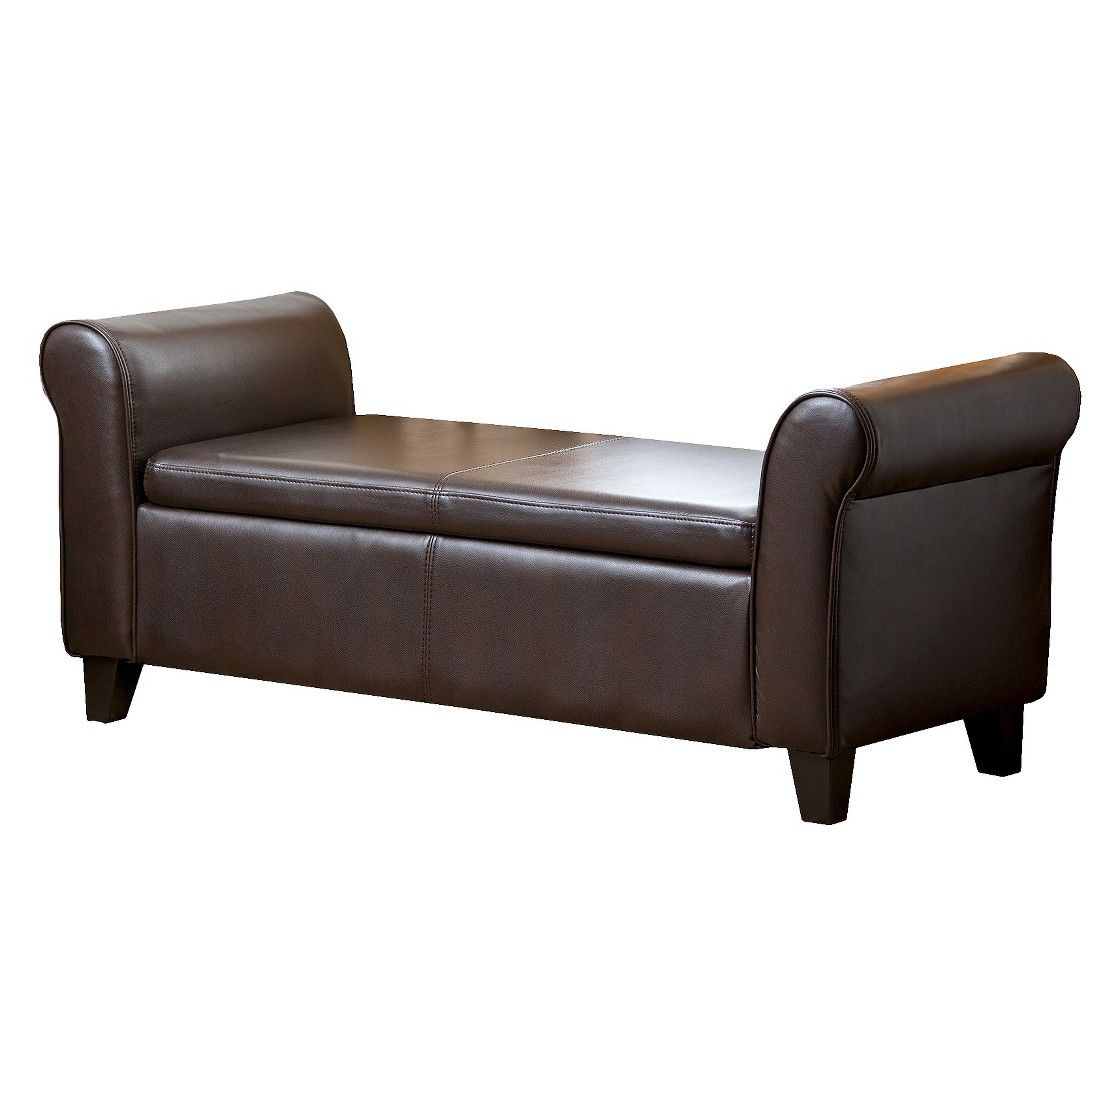 Abbyson Living Henry Leather Storage Ottoman Bench   Brown